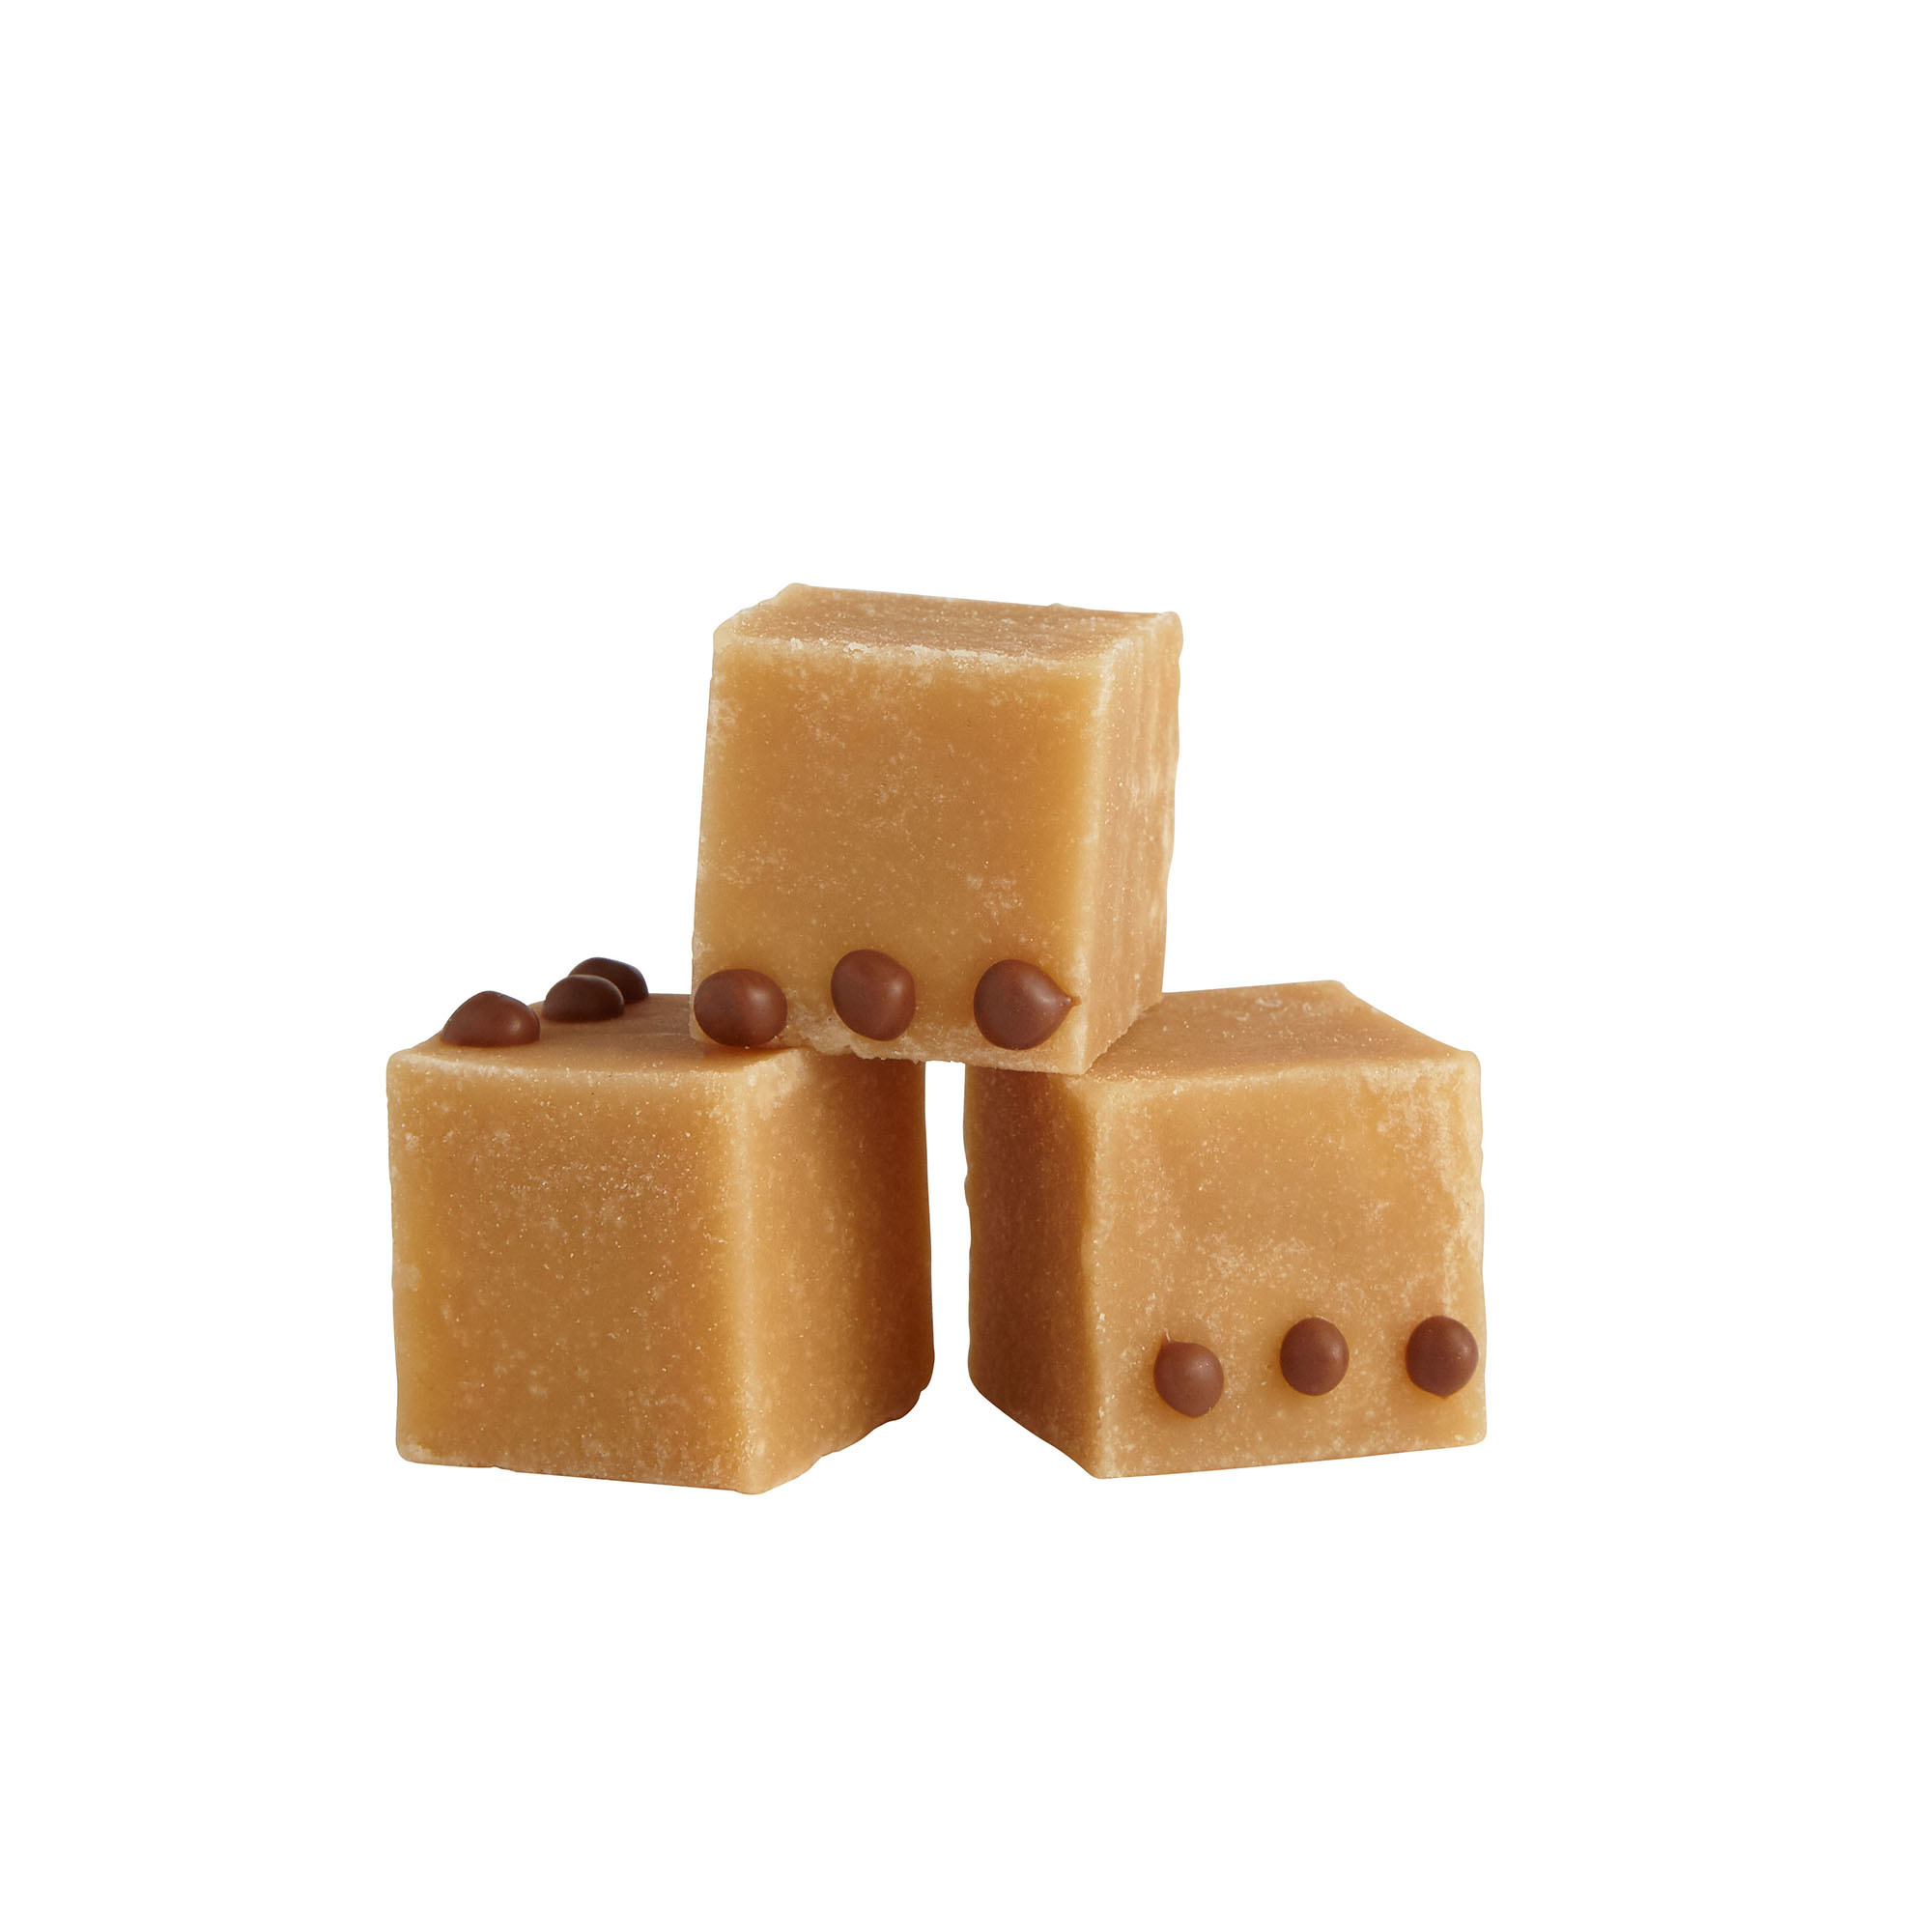 Artisanal Fudge - Trio Sea Salt Caramel